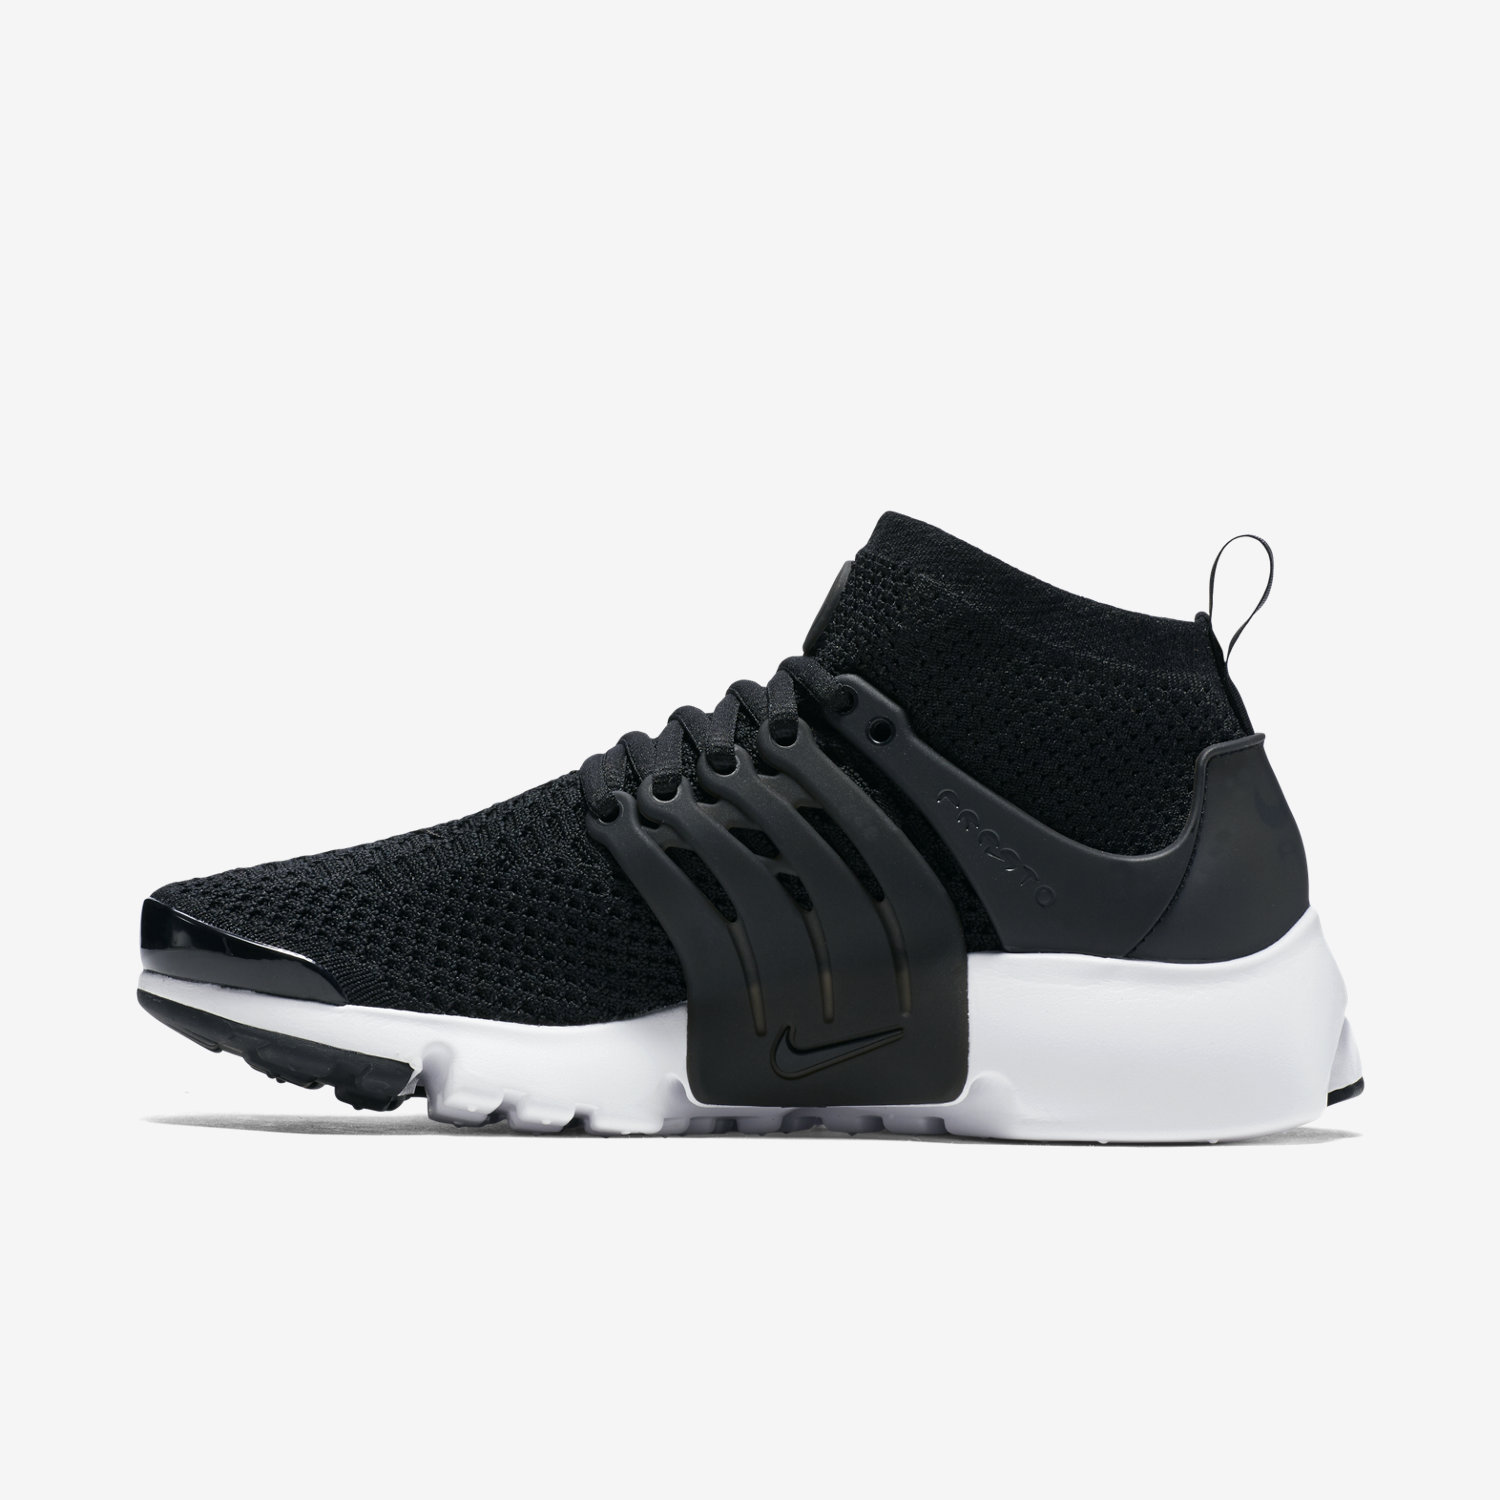 Nike Air Presto Flyknit Womens